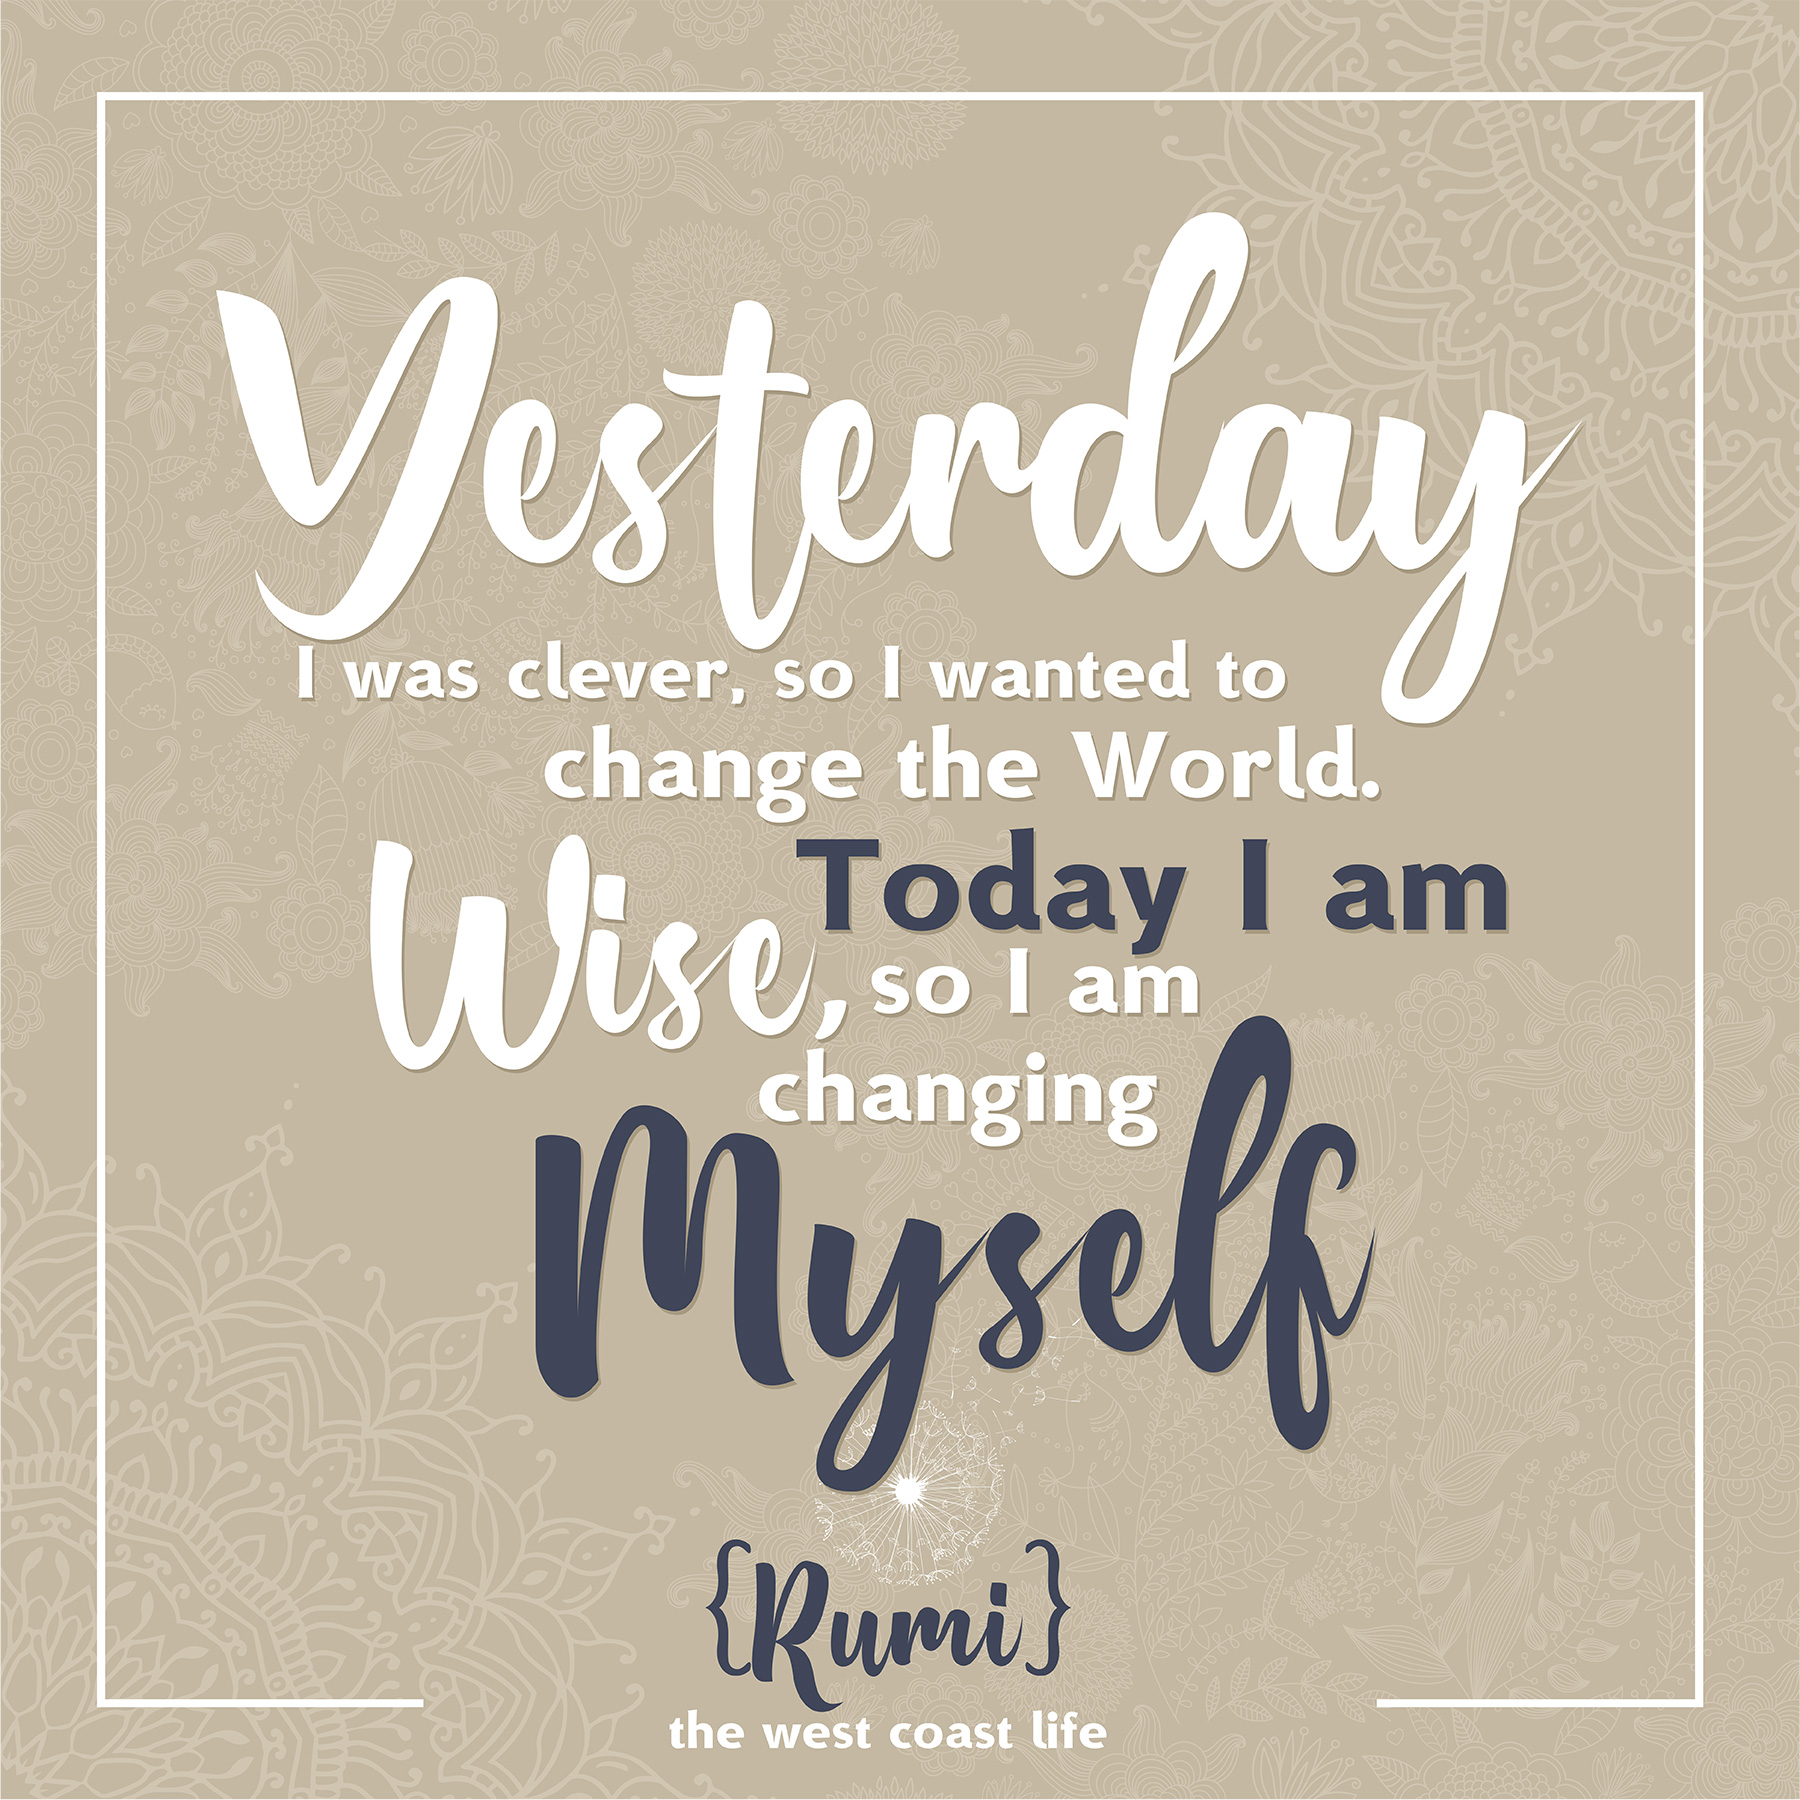 Yesterday I was clever, so I wanted to change the world. Today I am wise, so I am changing myself {Rumi)